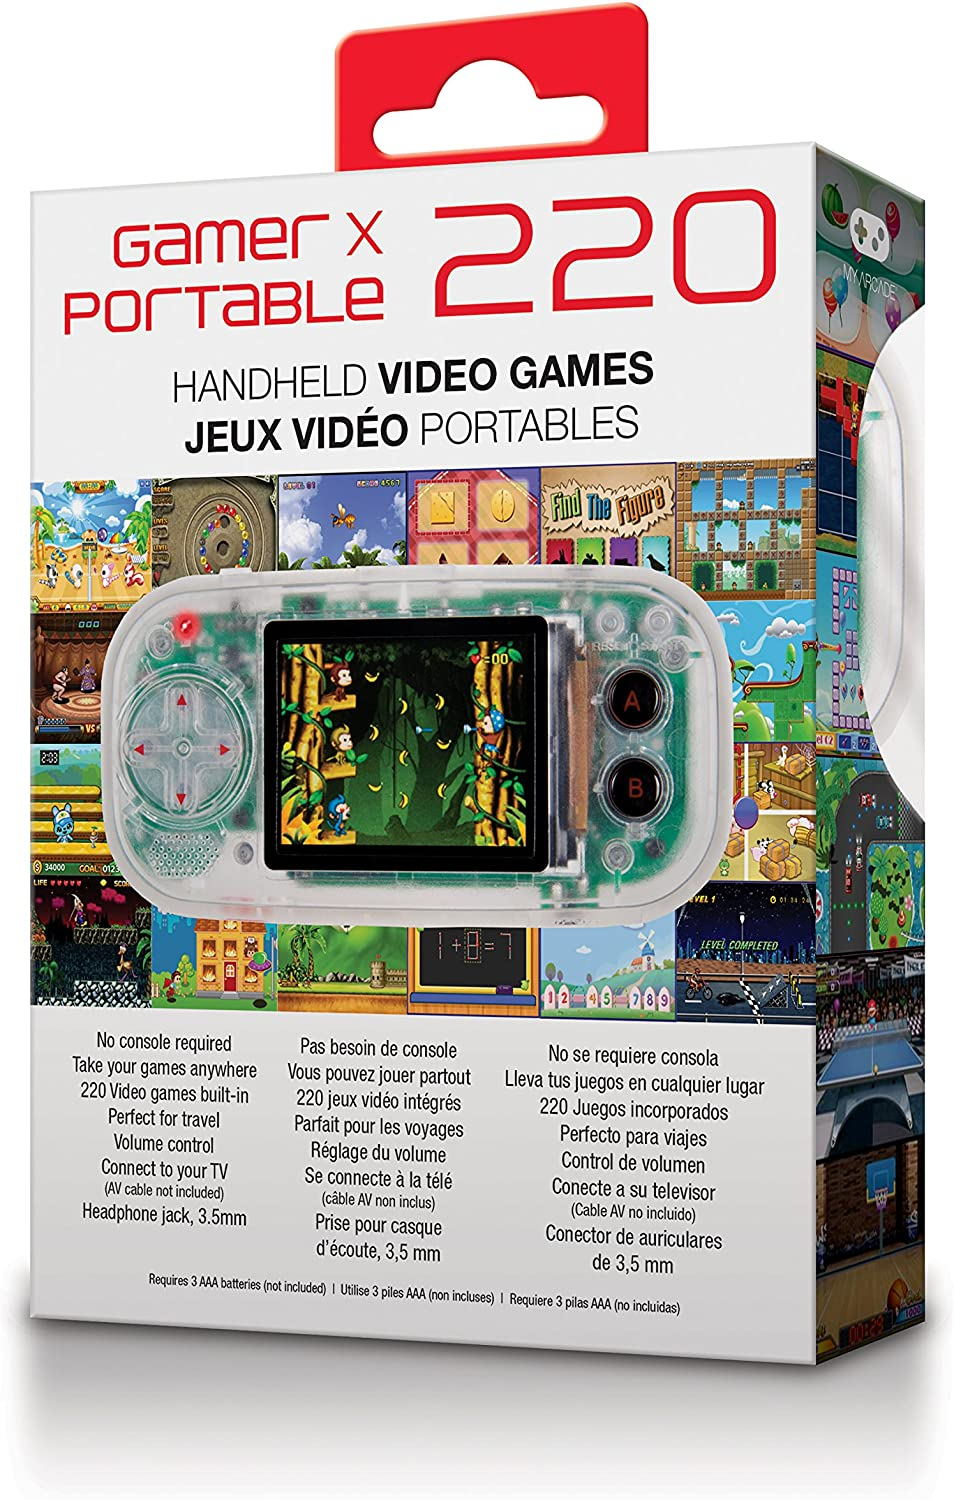 Amazon.com: My Arcade - Gamer X Portable Gaming System with 220 Built-in 16 bit Hi-res Retro Games plus Headphone Jack: electronic games: Video Games